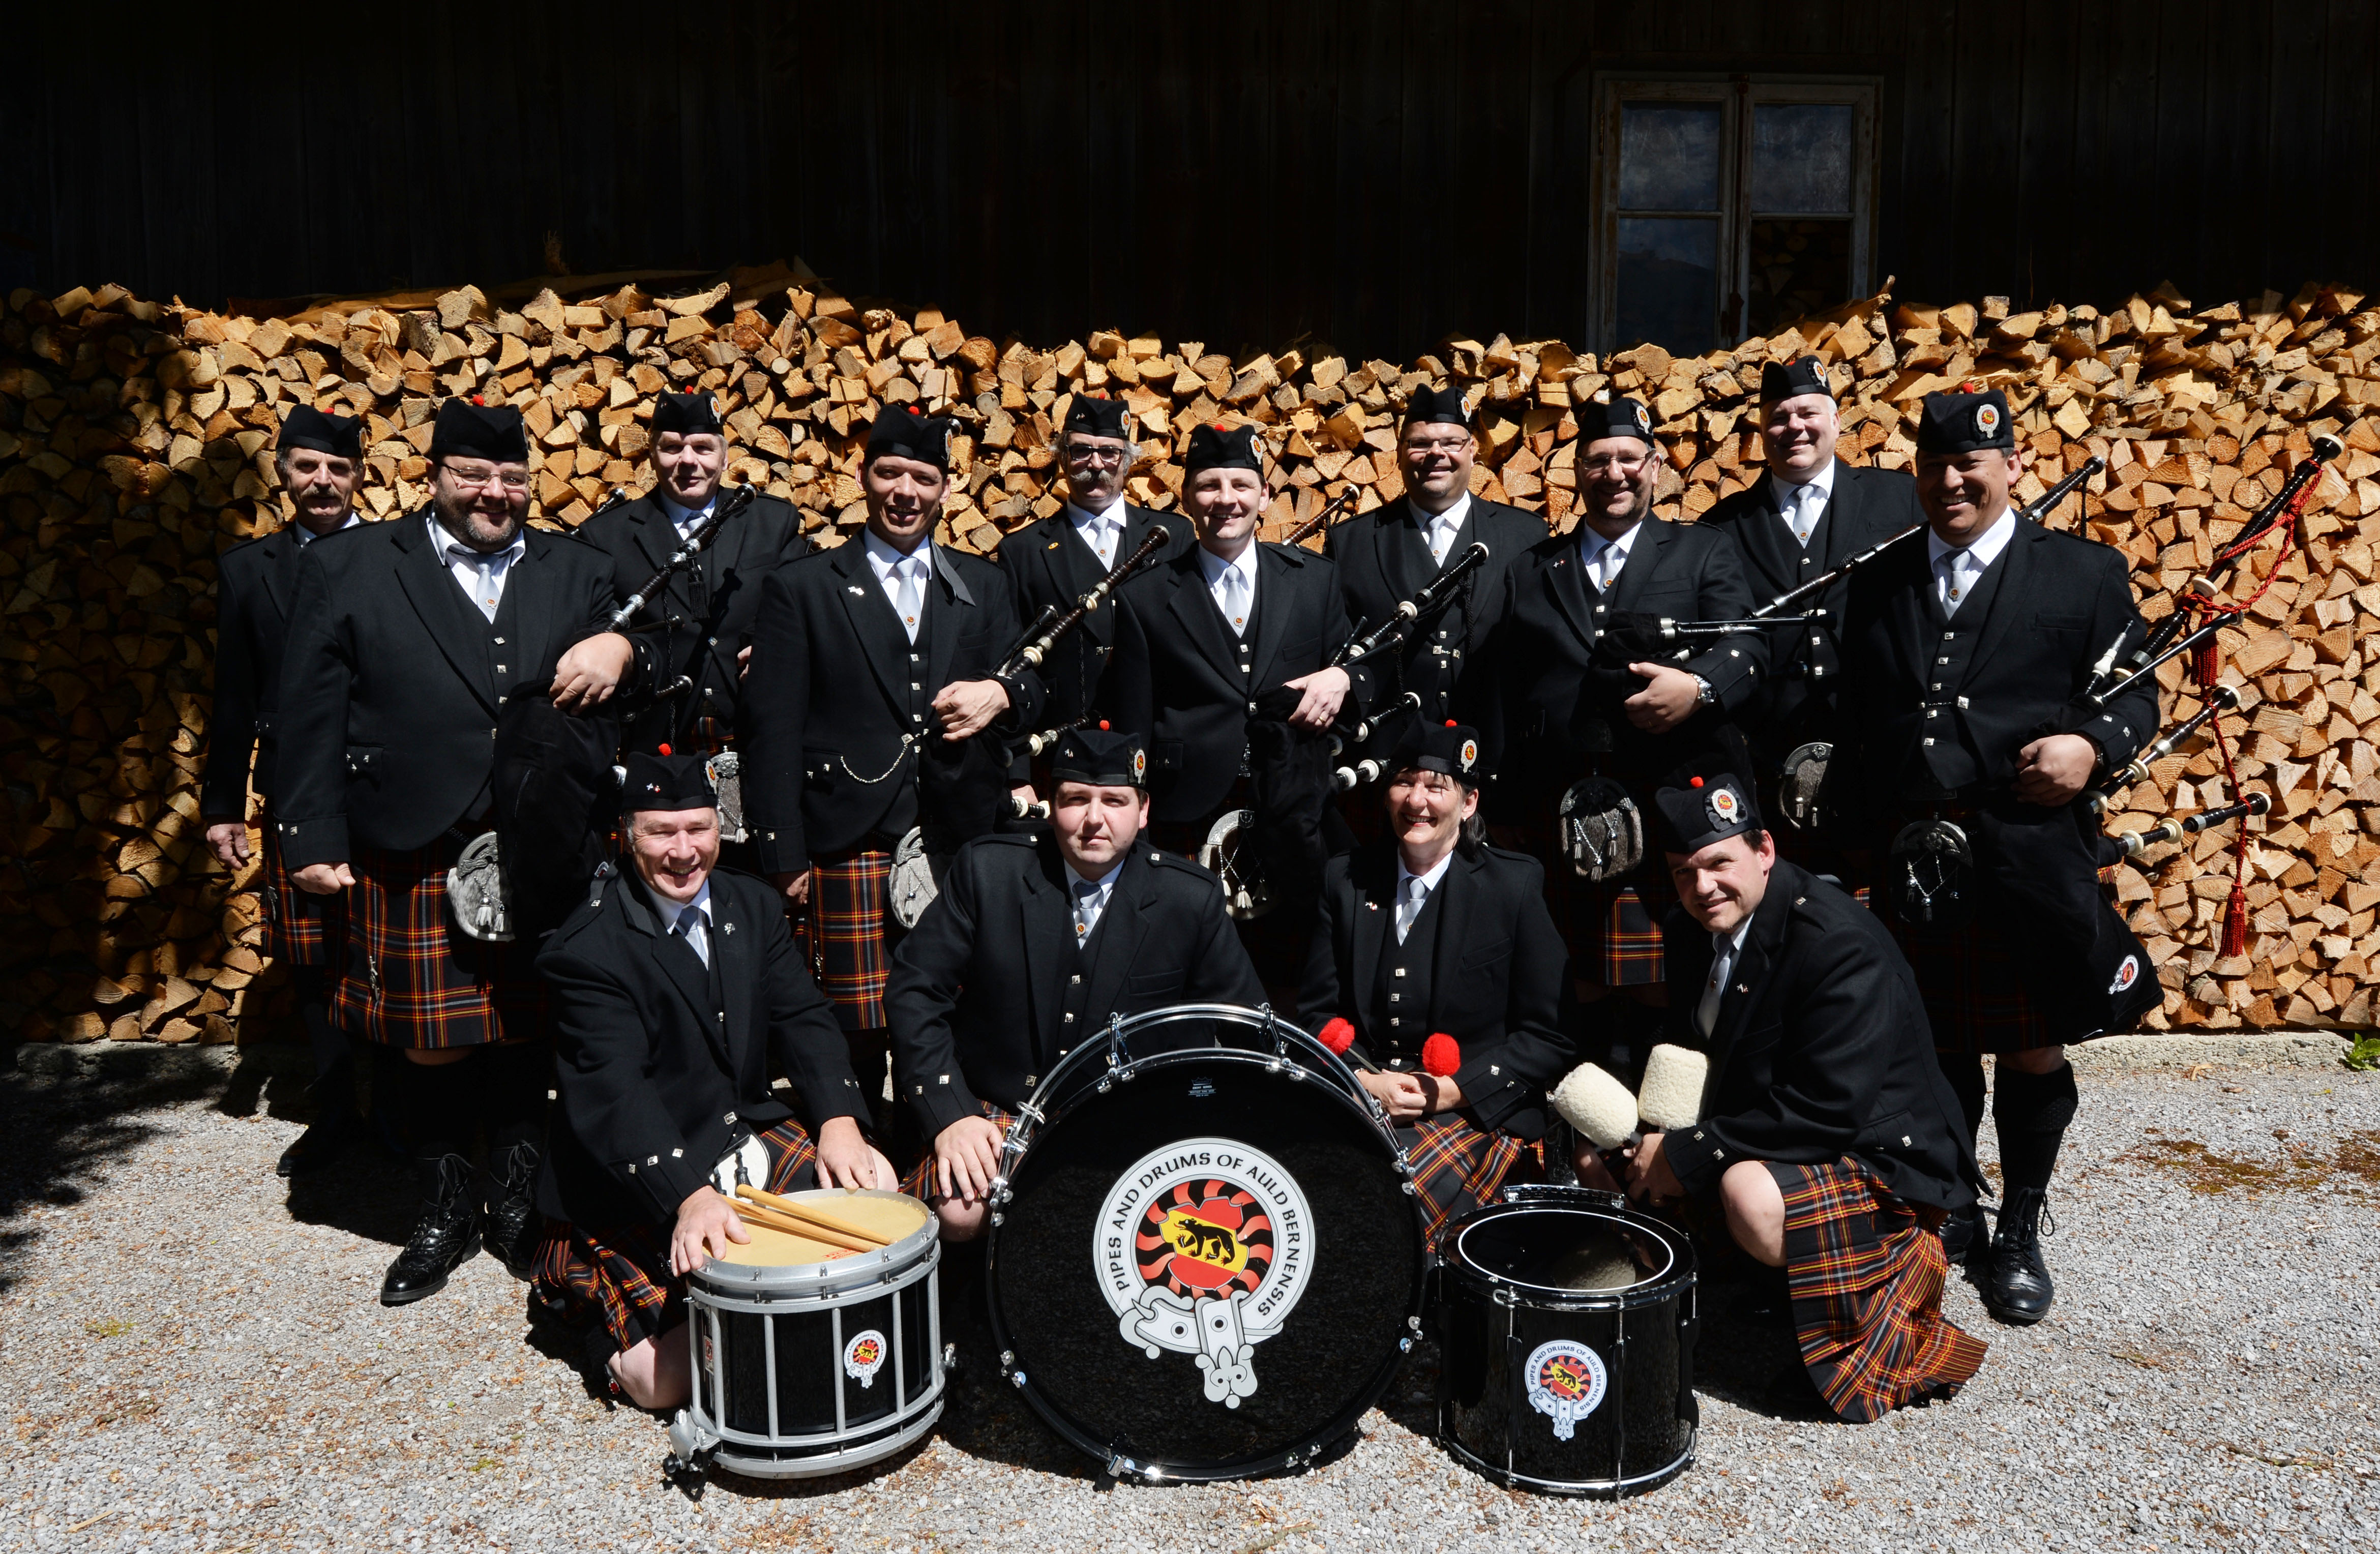 Pipes and Drums of Auld Bernensis.